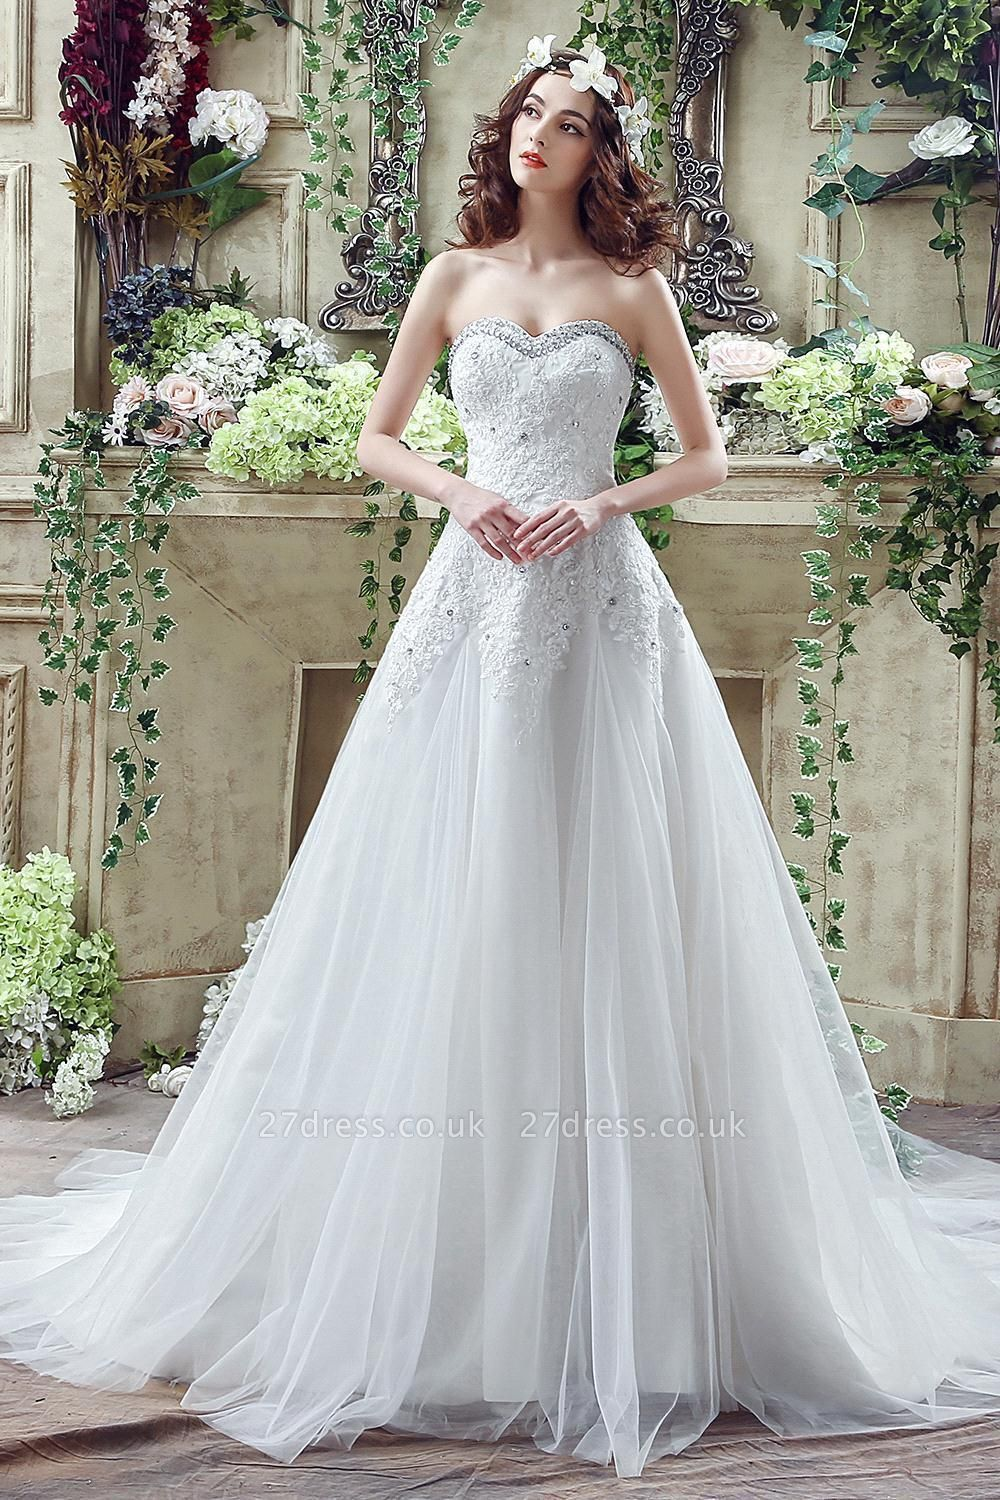 Elegant Sequined Lace Tulle Wedding Dress Court Train Lace-up